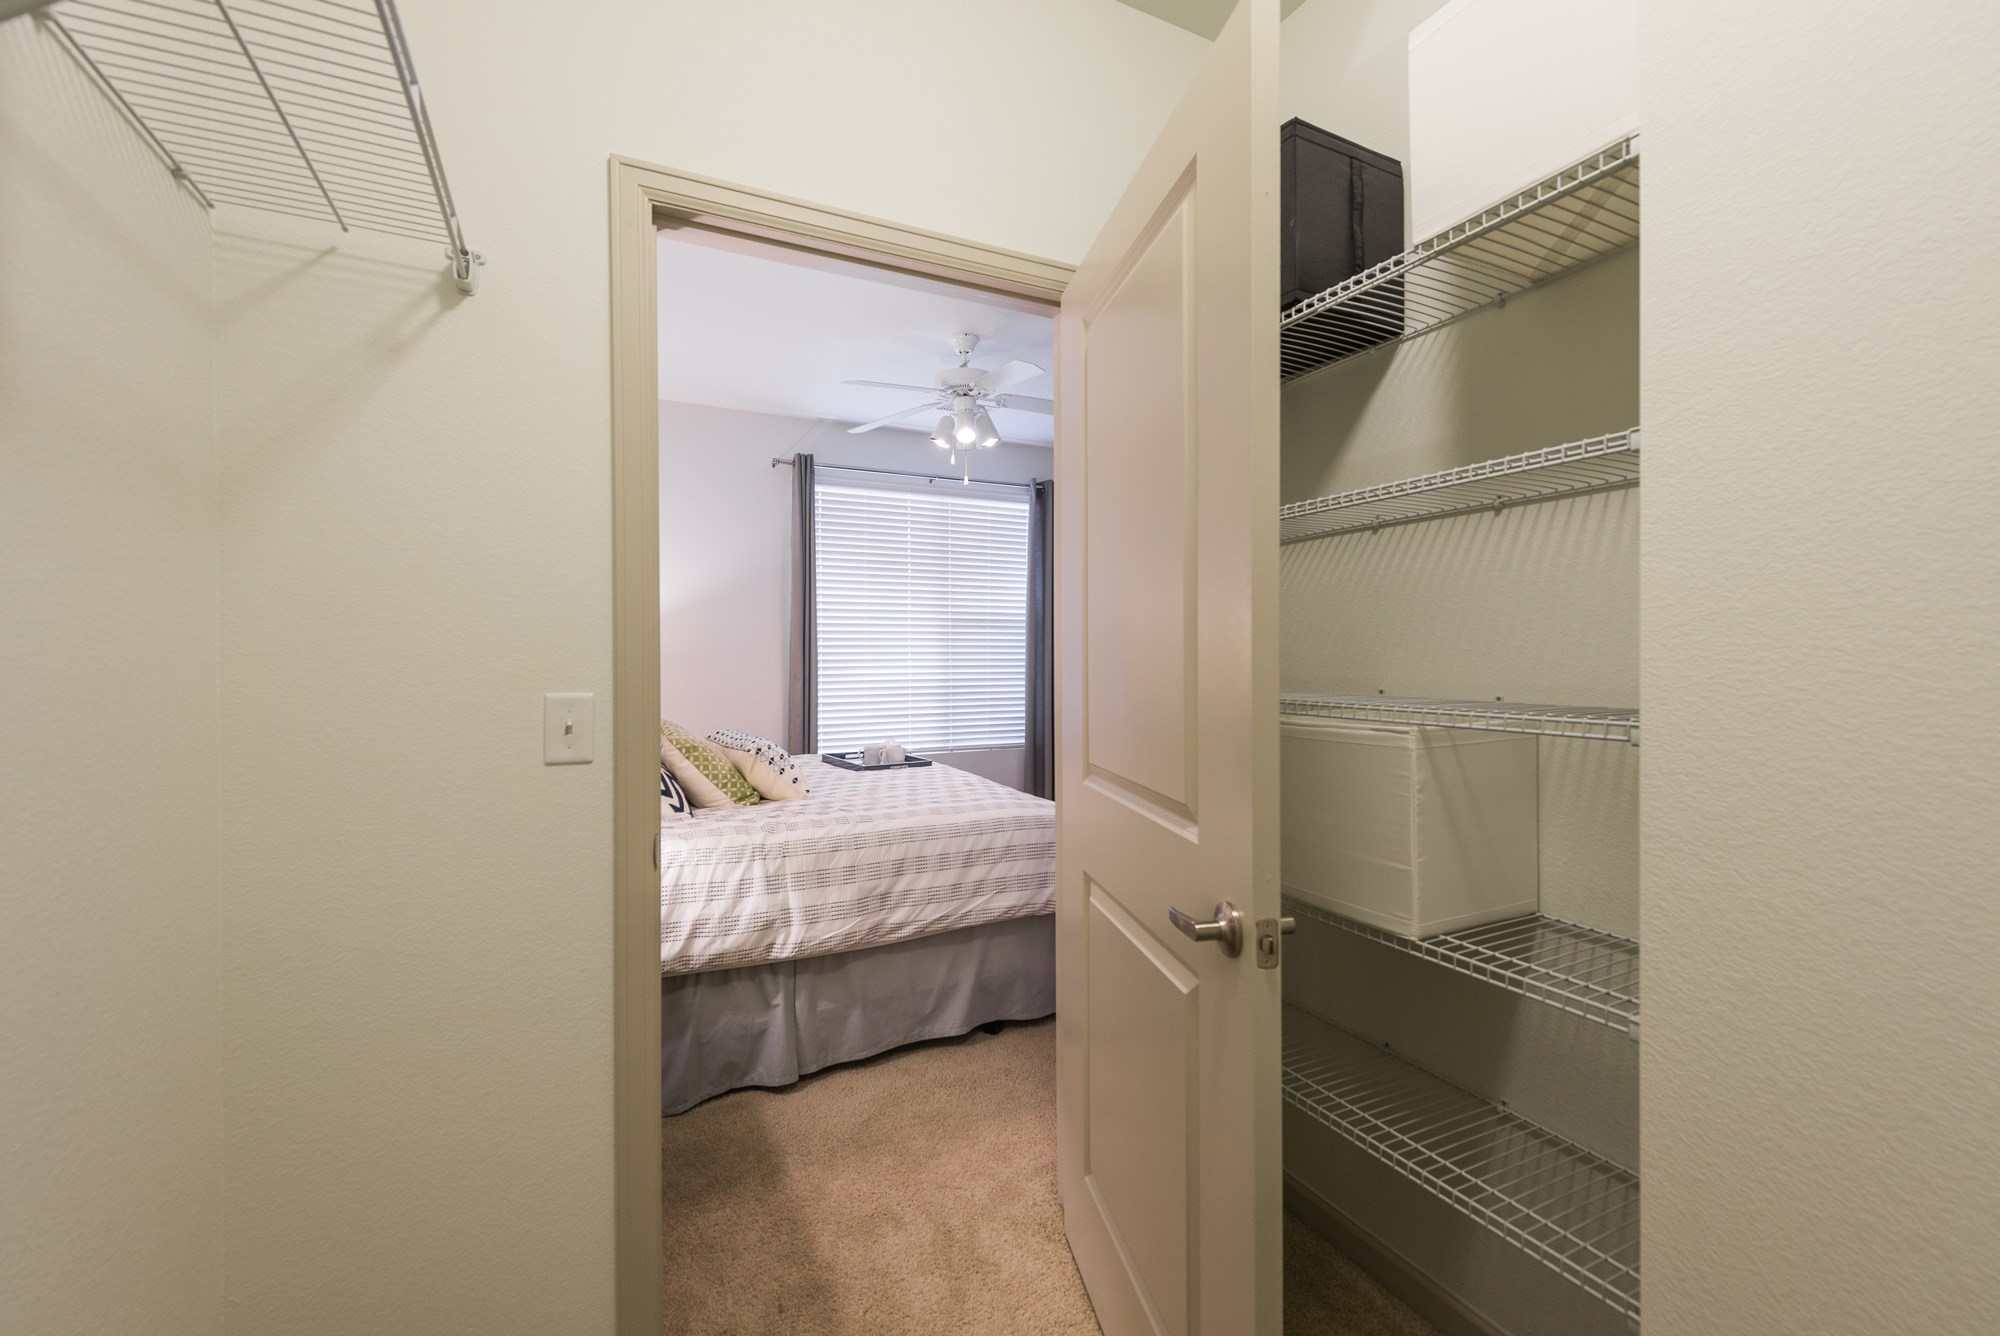 Walk-In Closet at Arterra Place Apartments in Aurora, CO